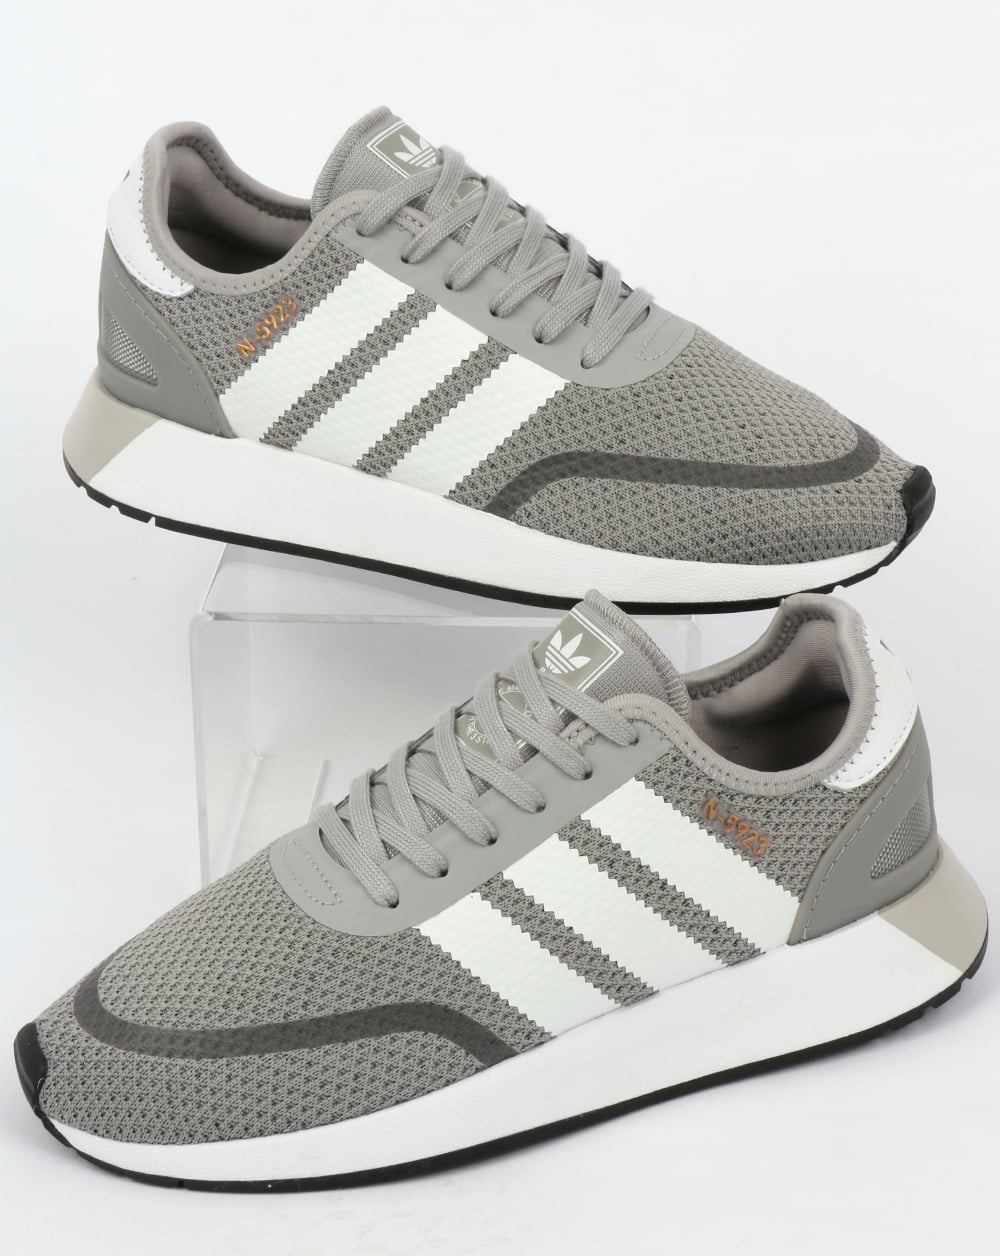 18c766c903d adidas Trainers Adidas N-5923 Trainers Solid Grey White